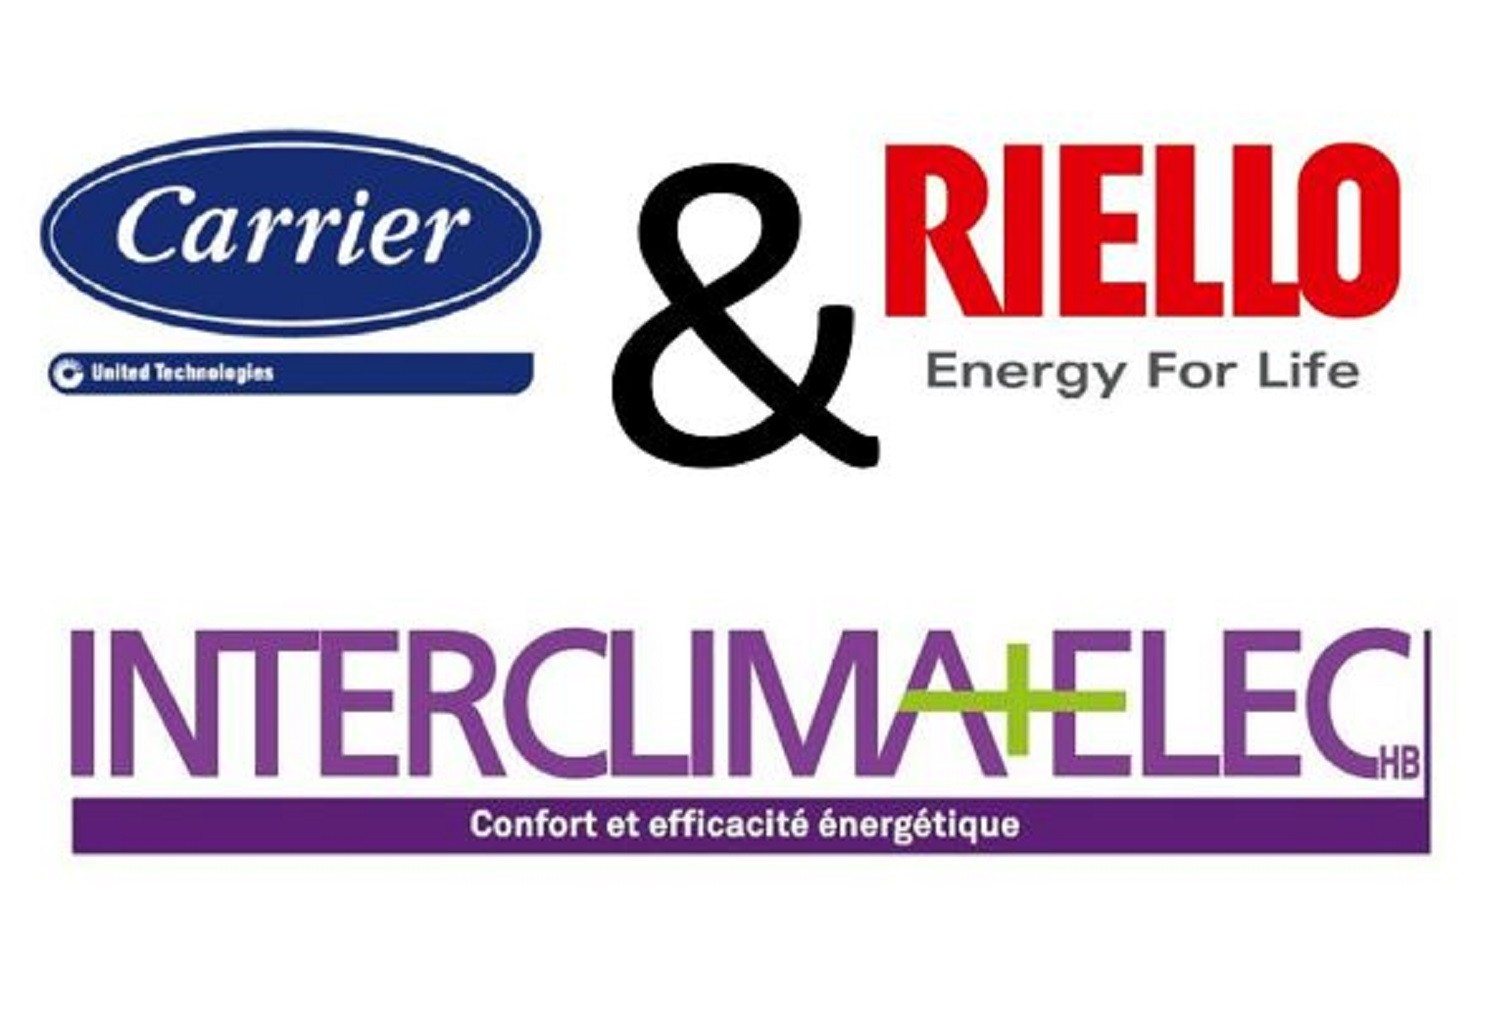 Carrier et Riello présents à Interclima+ElecHB 2017